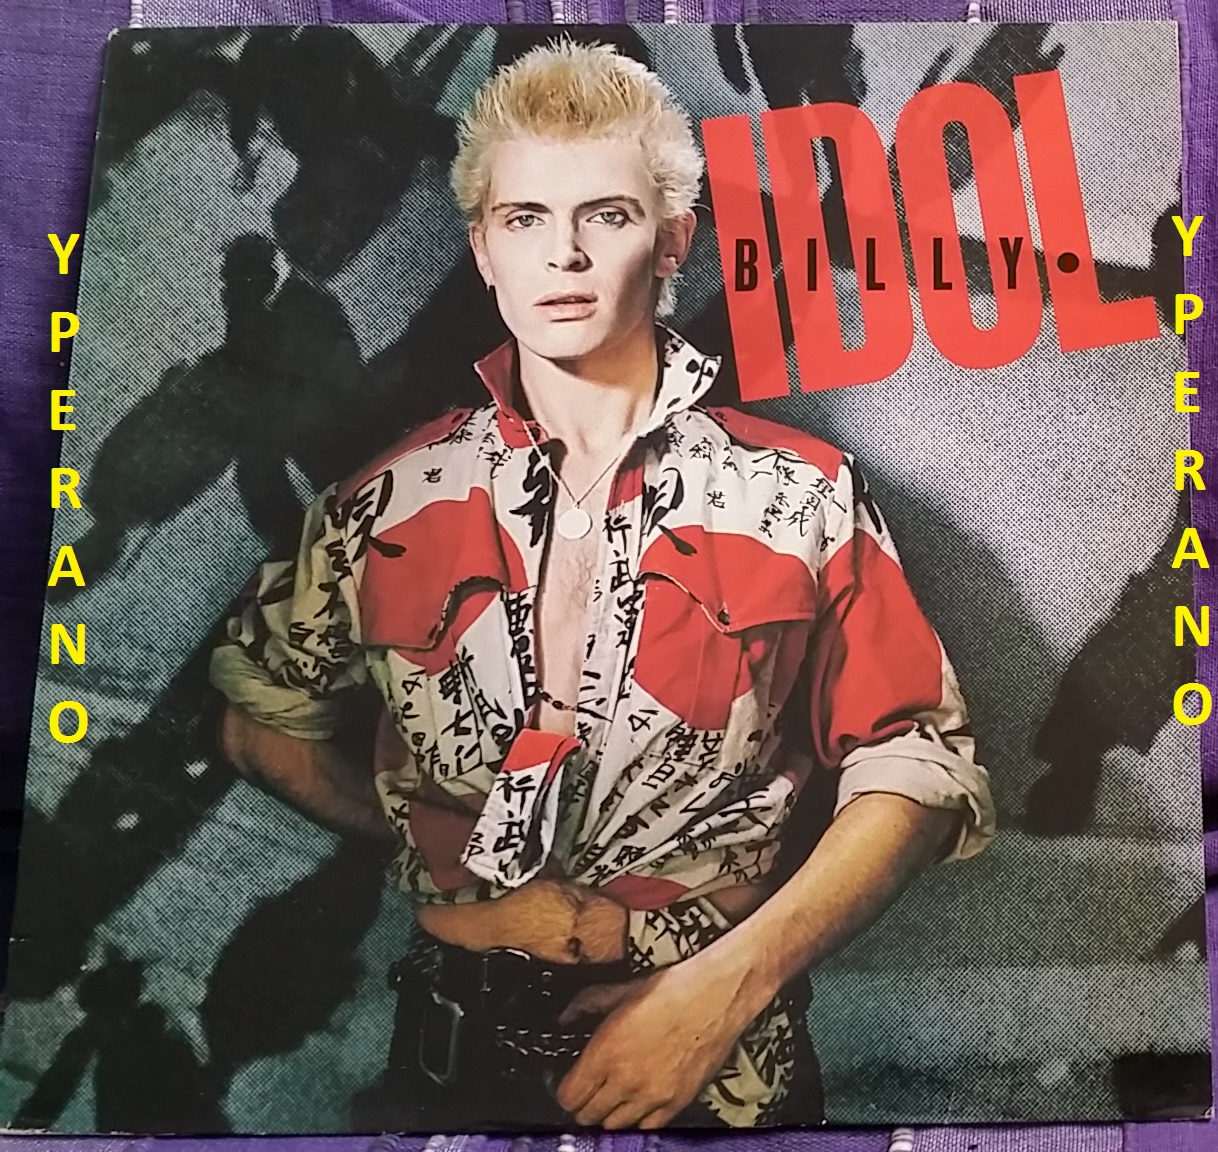 White Wedding Billy Idol.Billy Idol Billy Idol 1982 Lp Debut Videos White Wedding Hot In The City